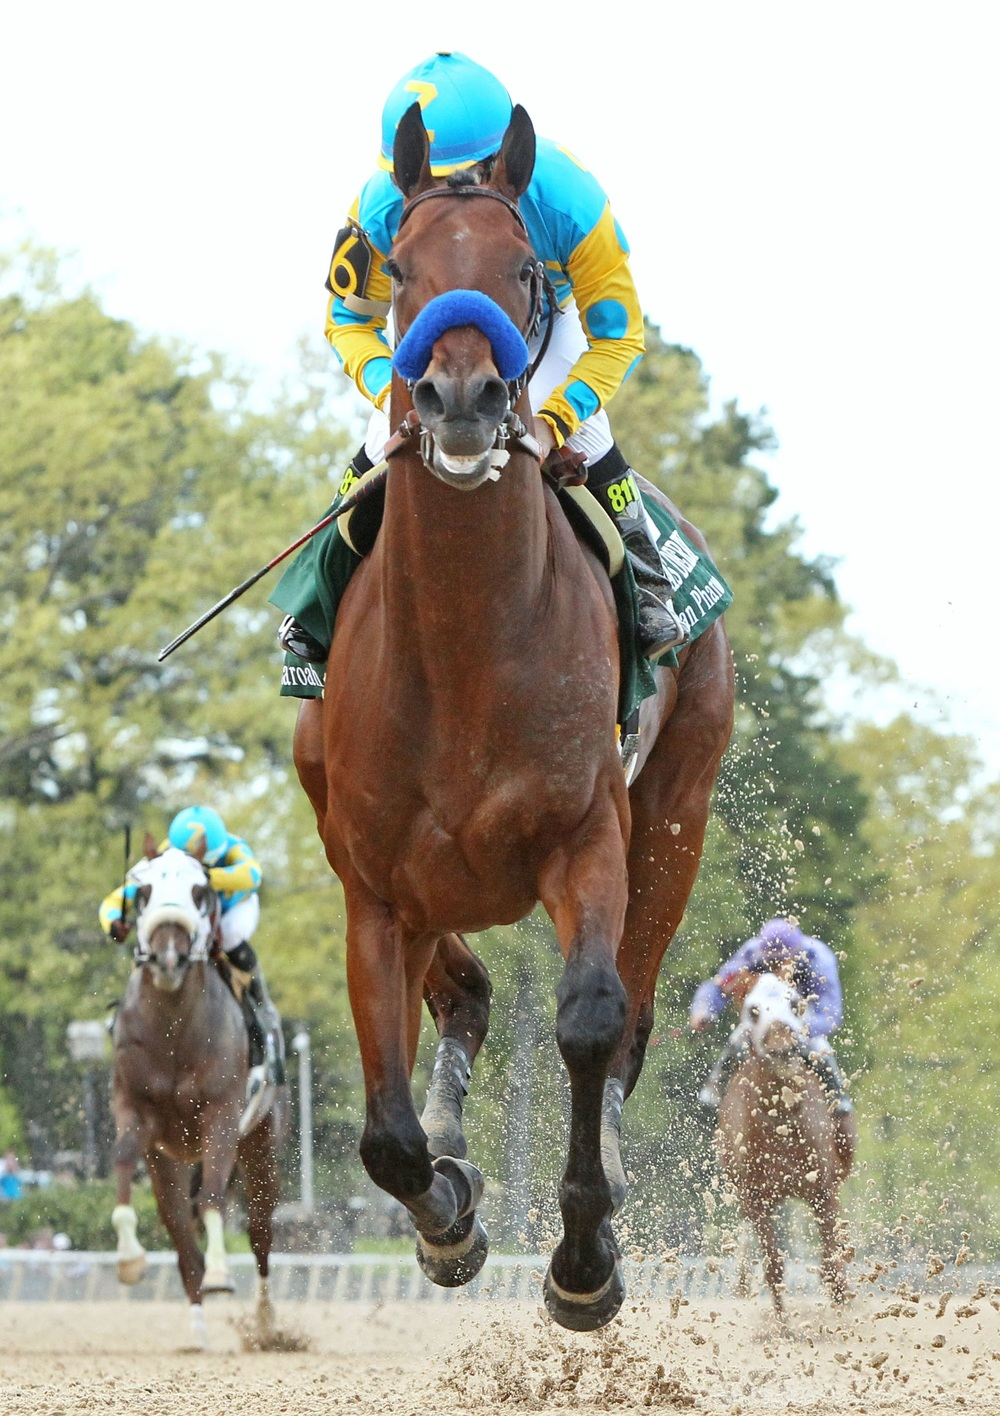 American Pharoah 2016 American Triple Crown Winner.